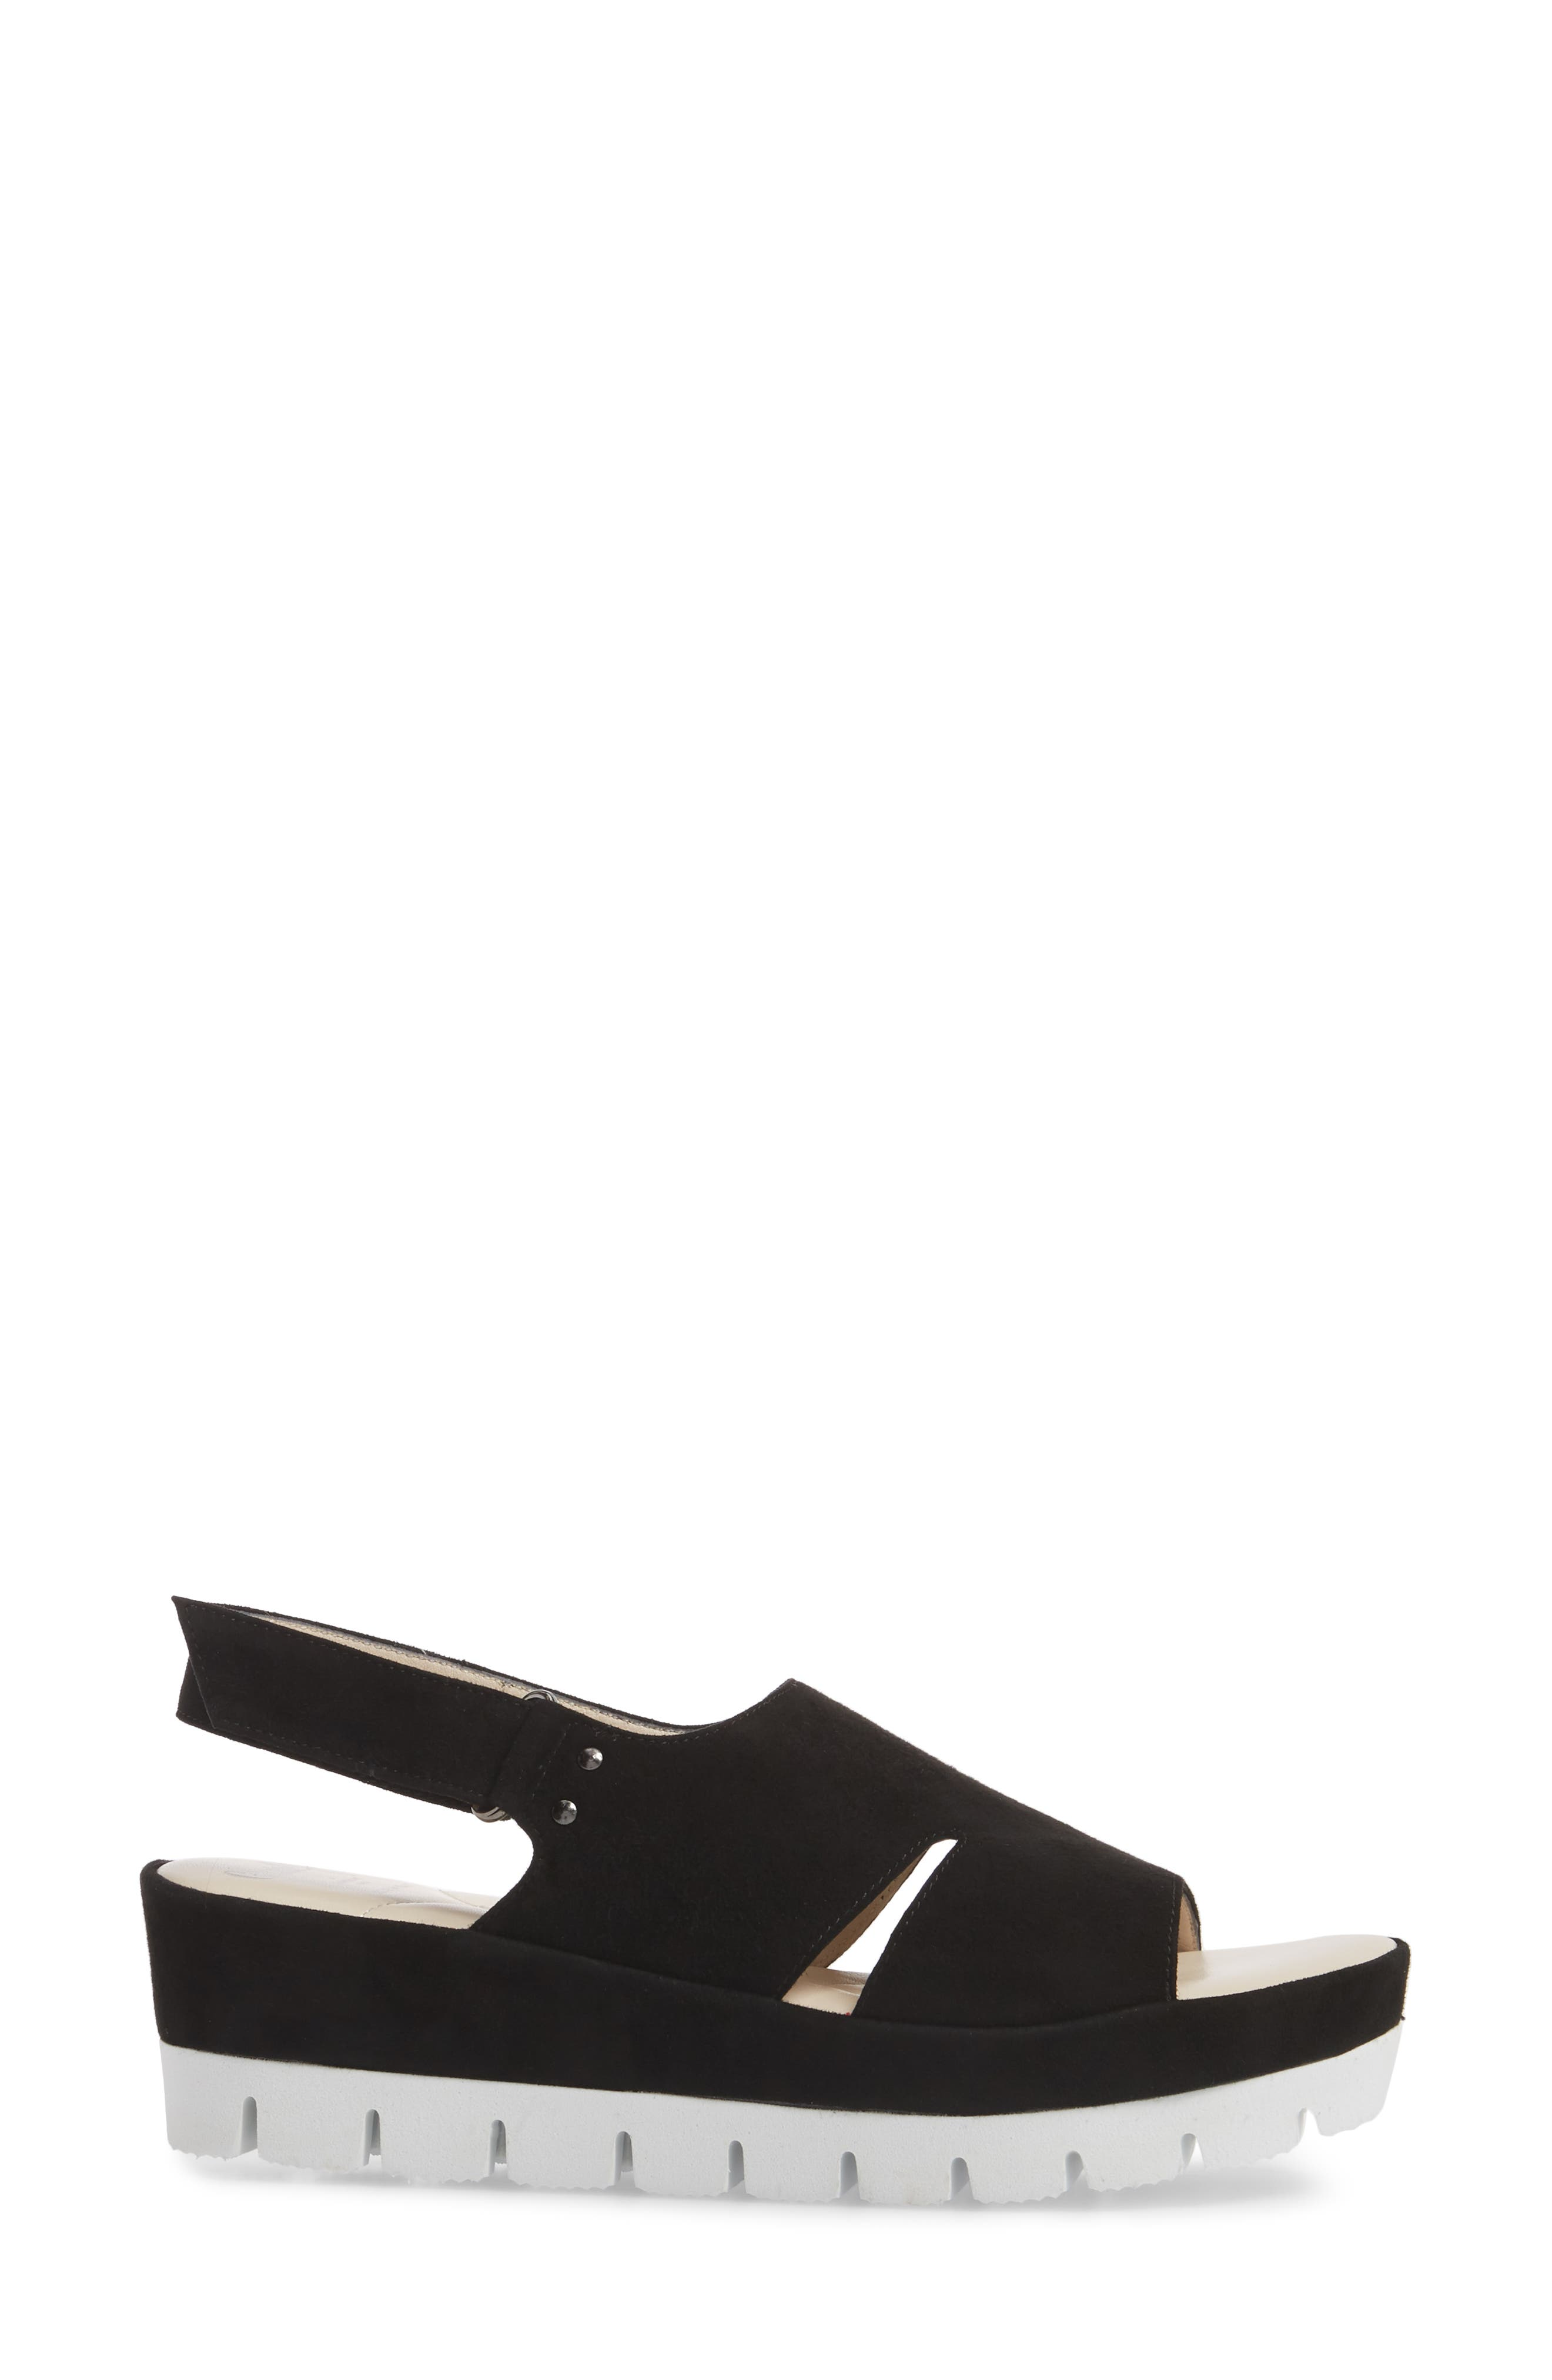 Bergamotto Slingback Wedge Sandal,                             Alternate thumbnail 3, color,                             BLACK SUEDE